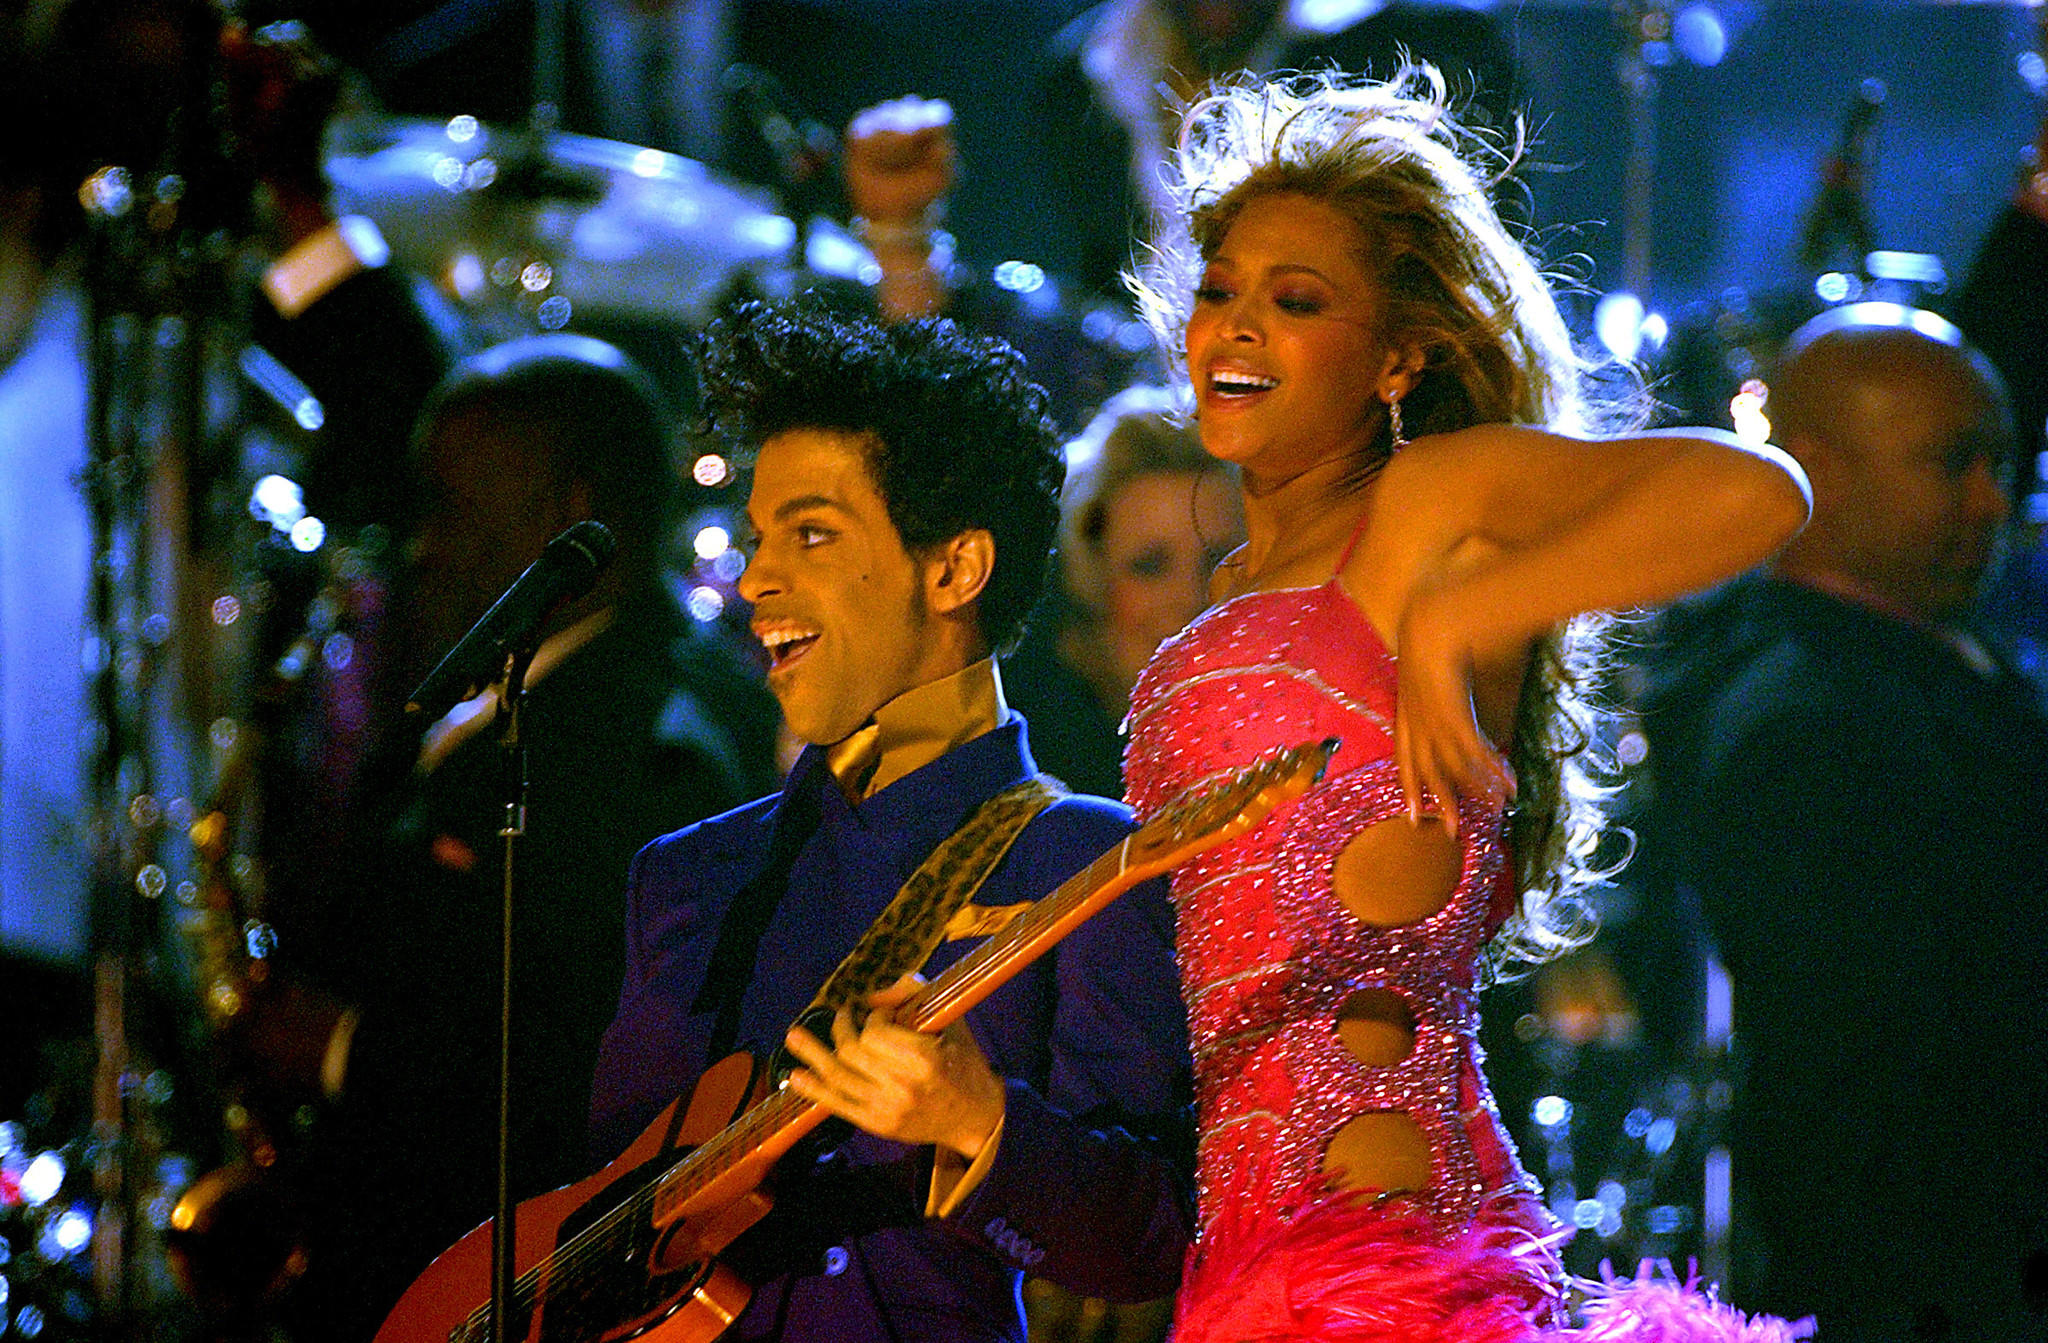 Prince and Beyoncé Knowles perform during the 46th Grammy Awards show. (Robert Gauthier / Los Angeles Times)